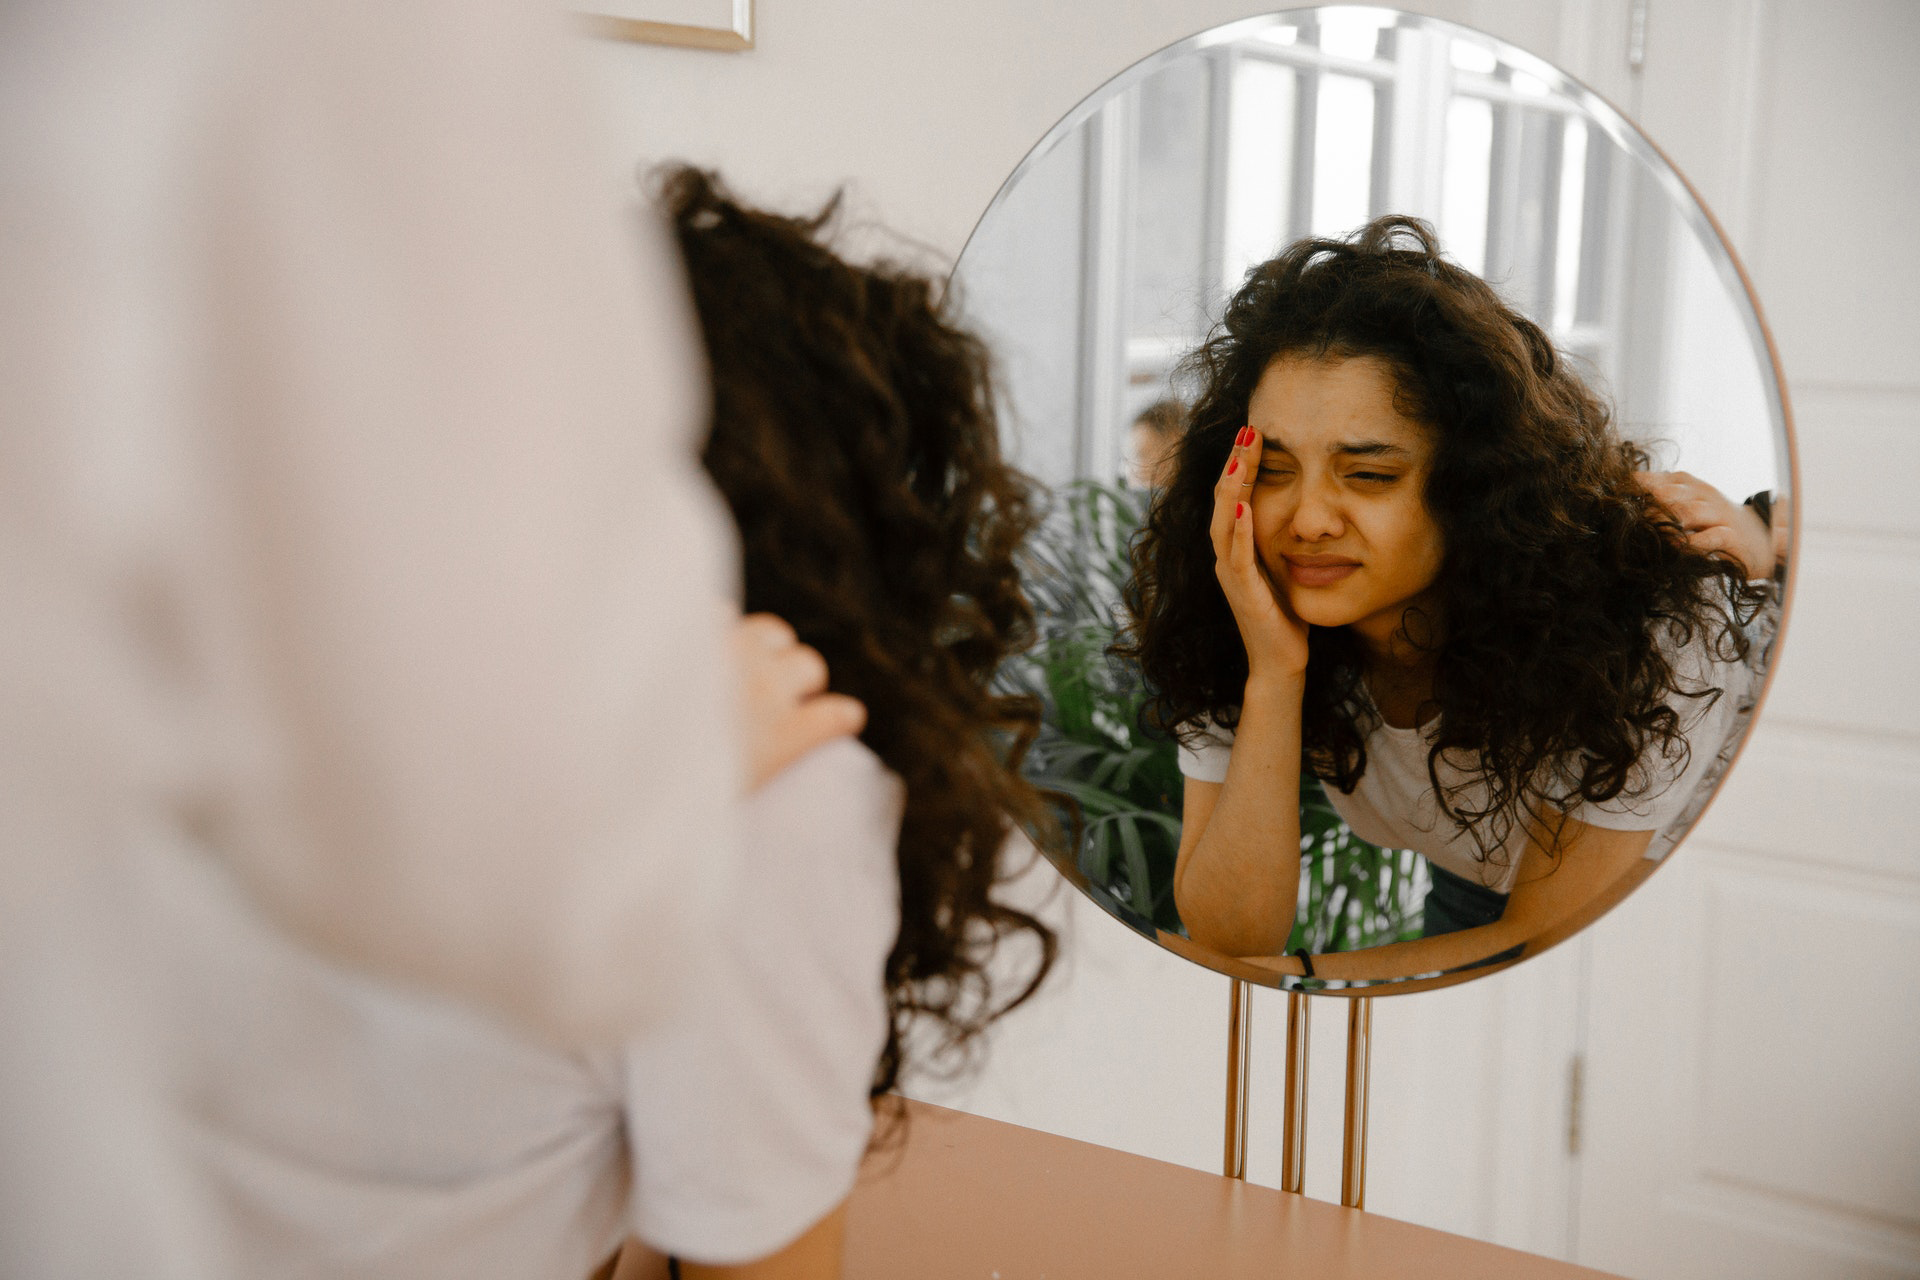 Eating disorders: the reflection of an underestimated complex issue